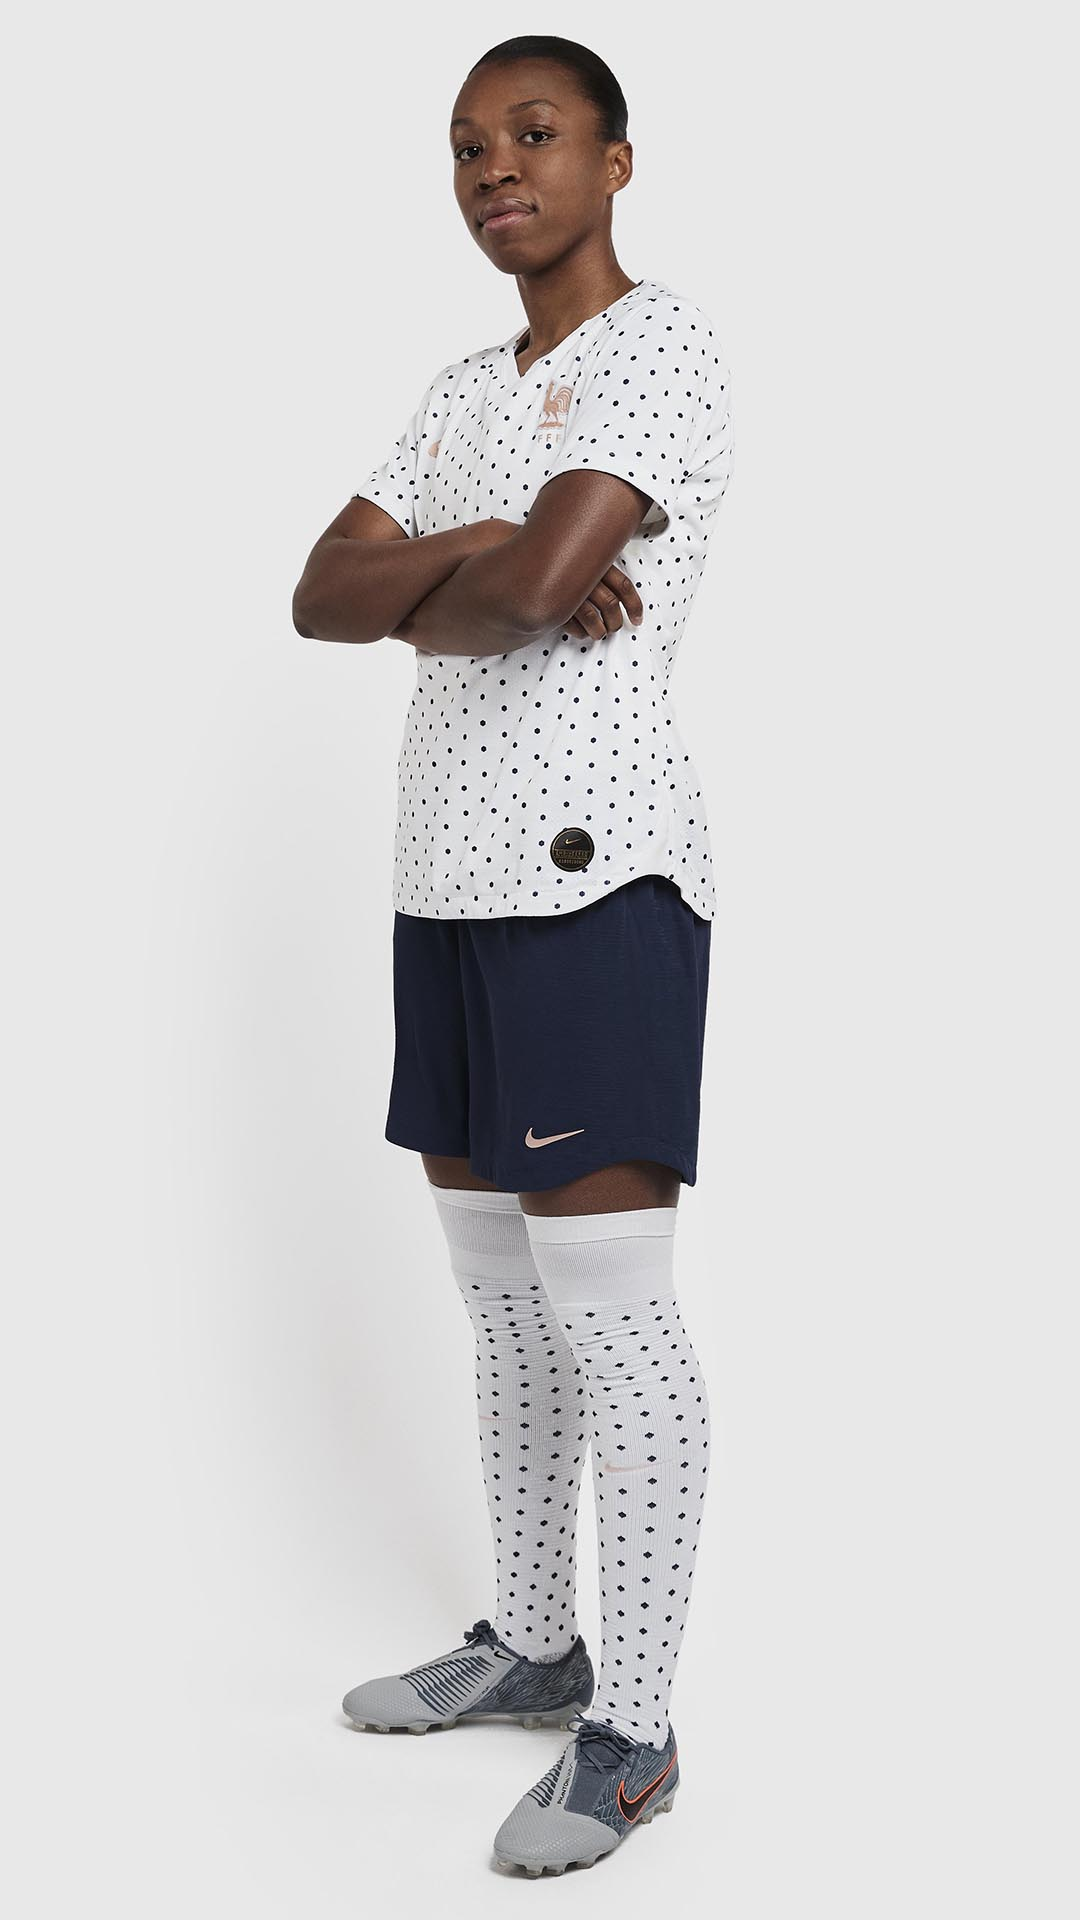 Nike_National_Team_Kit_Frankreich_7.jpg